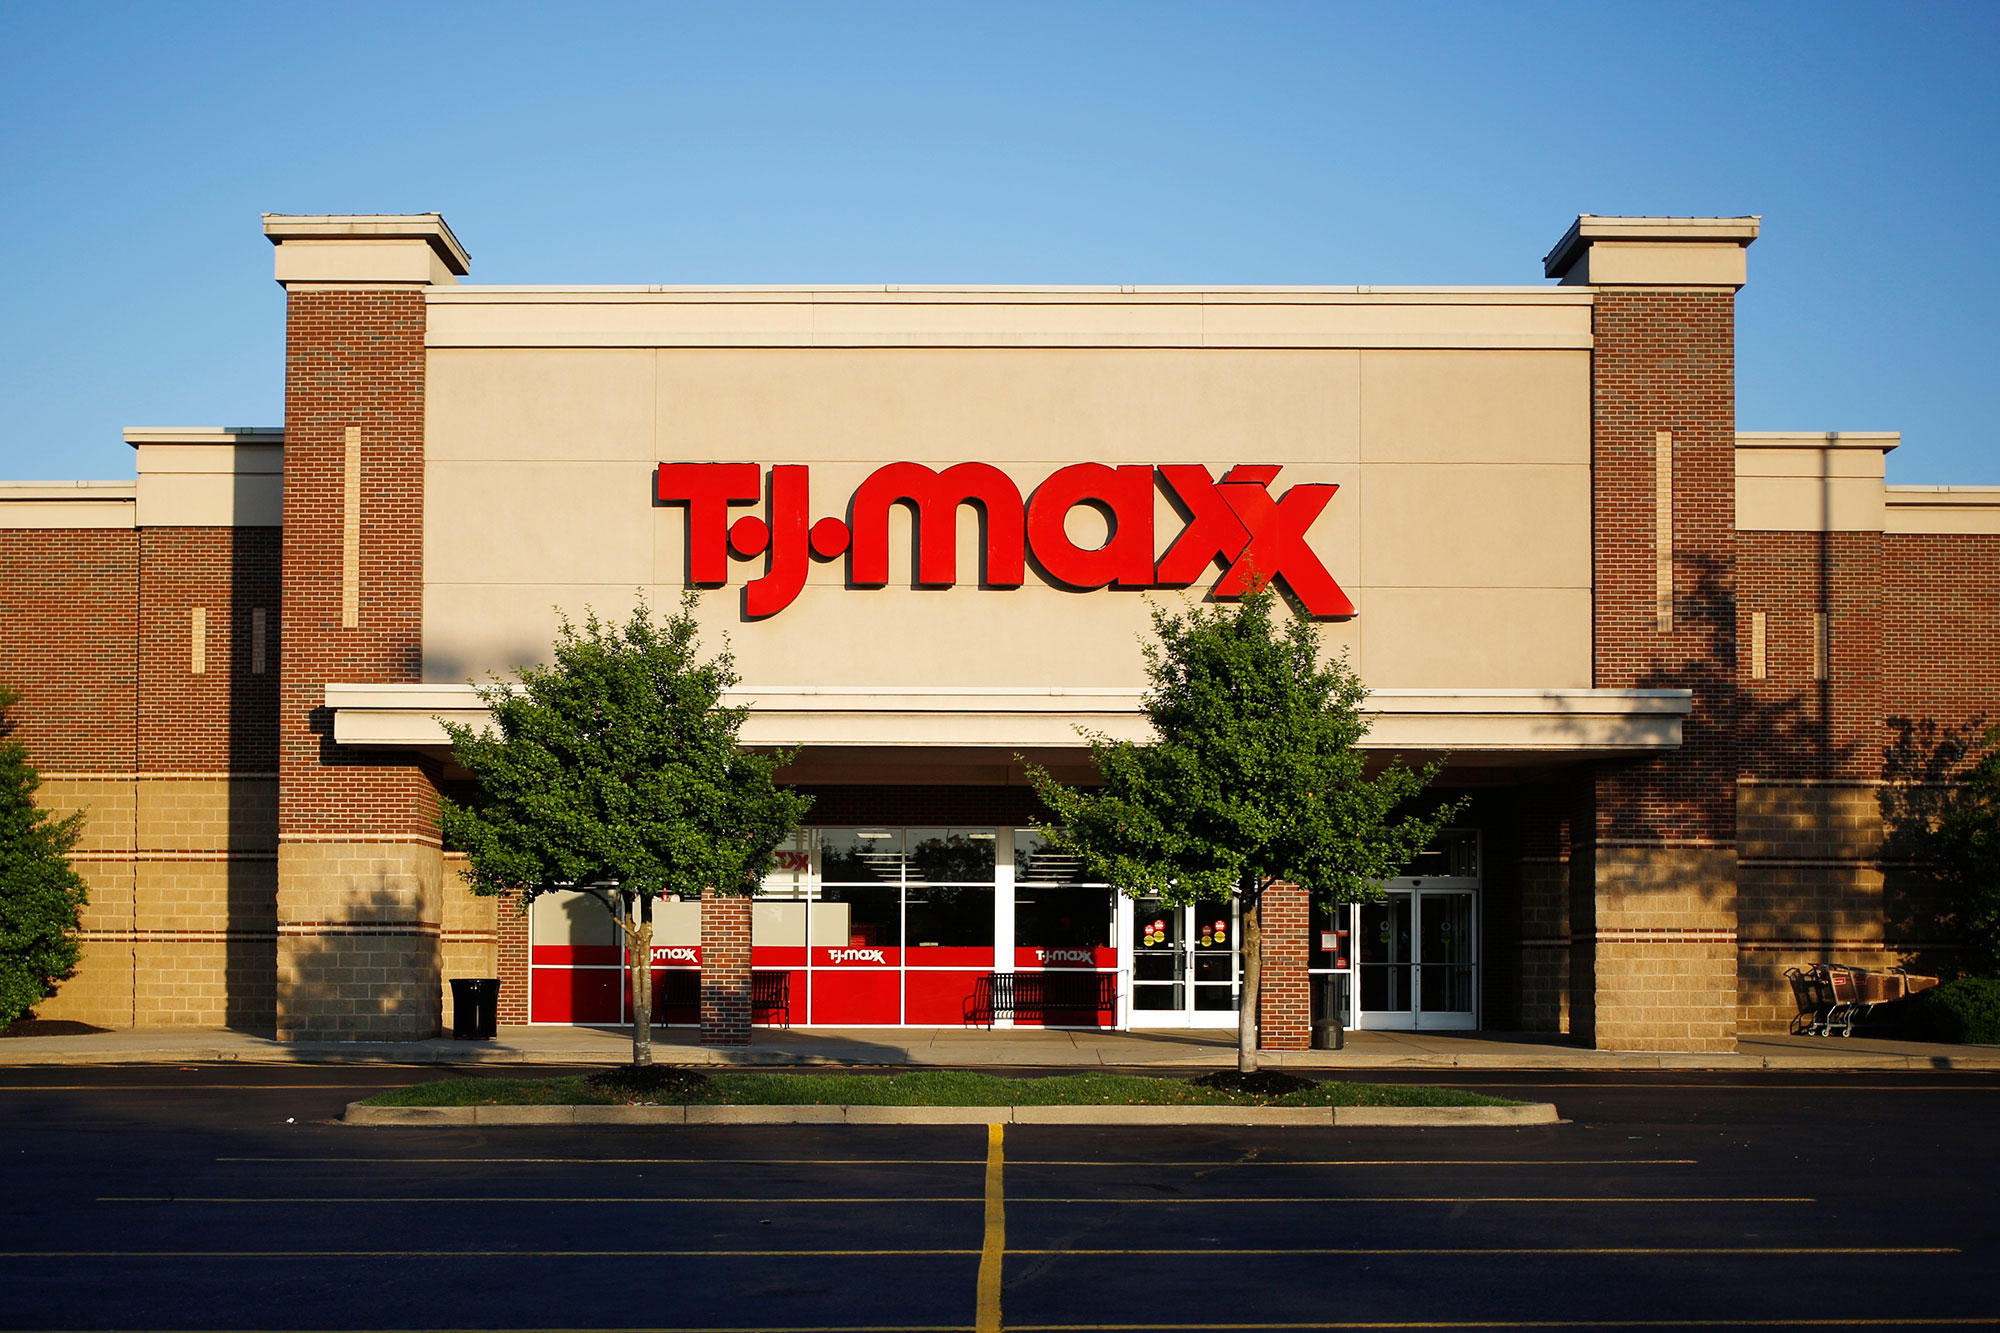 TJ Maxx's Parent Company Is Still Paying Employees in Puerto Rico While Stores Are Closed